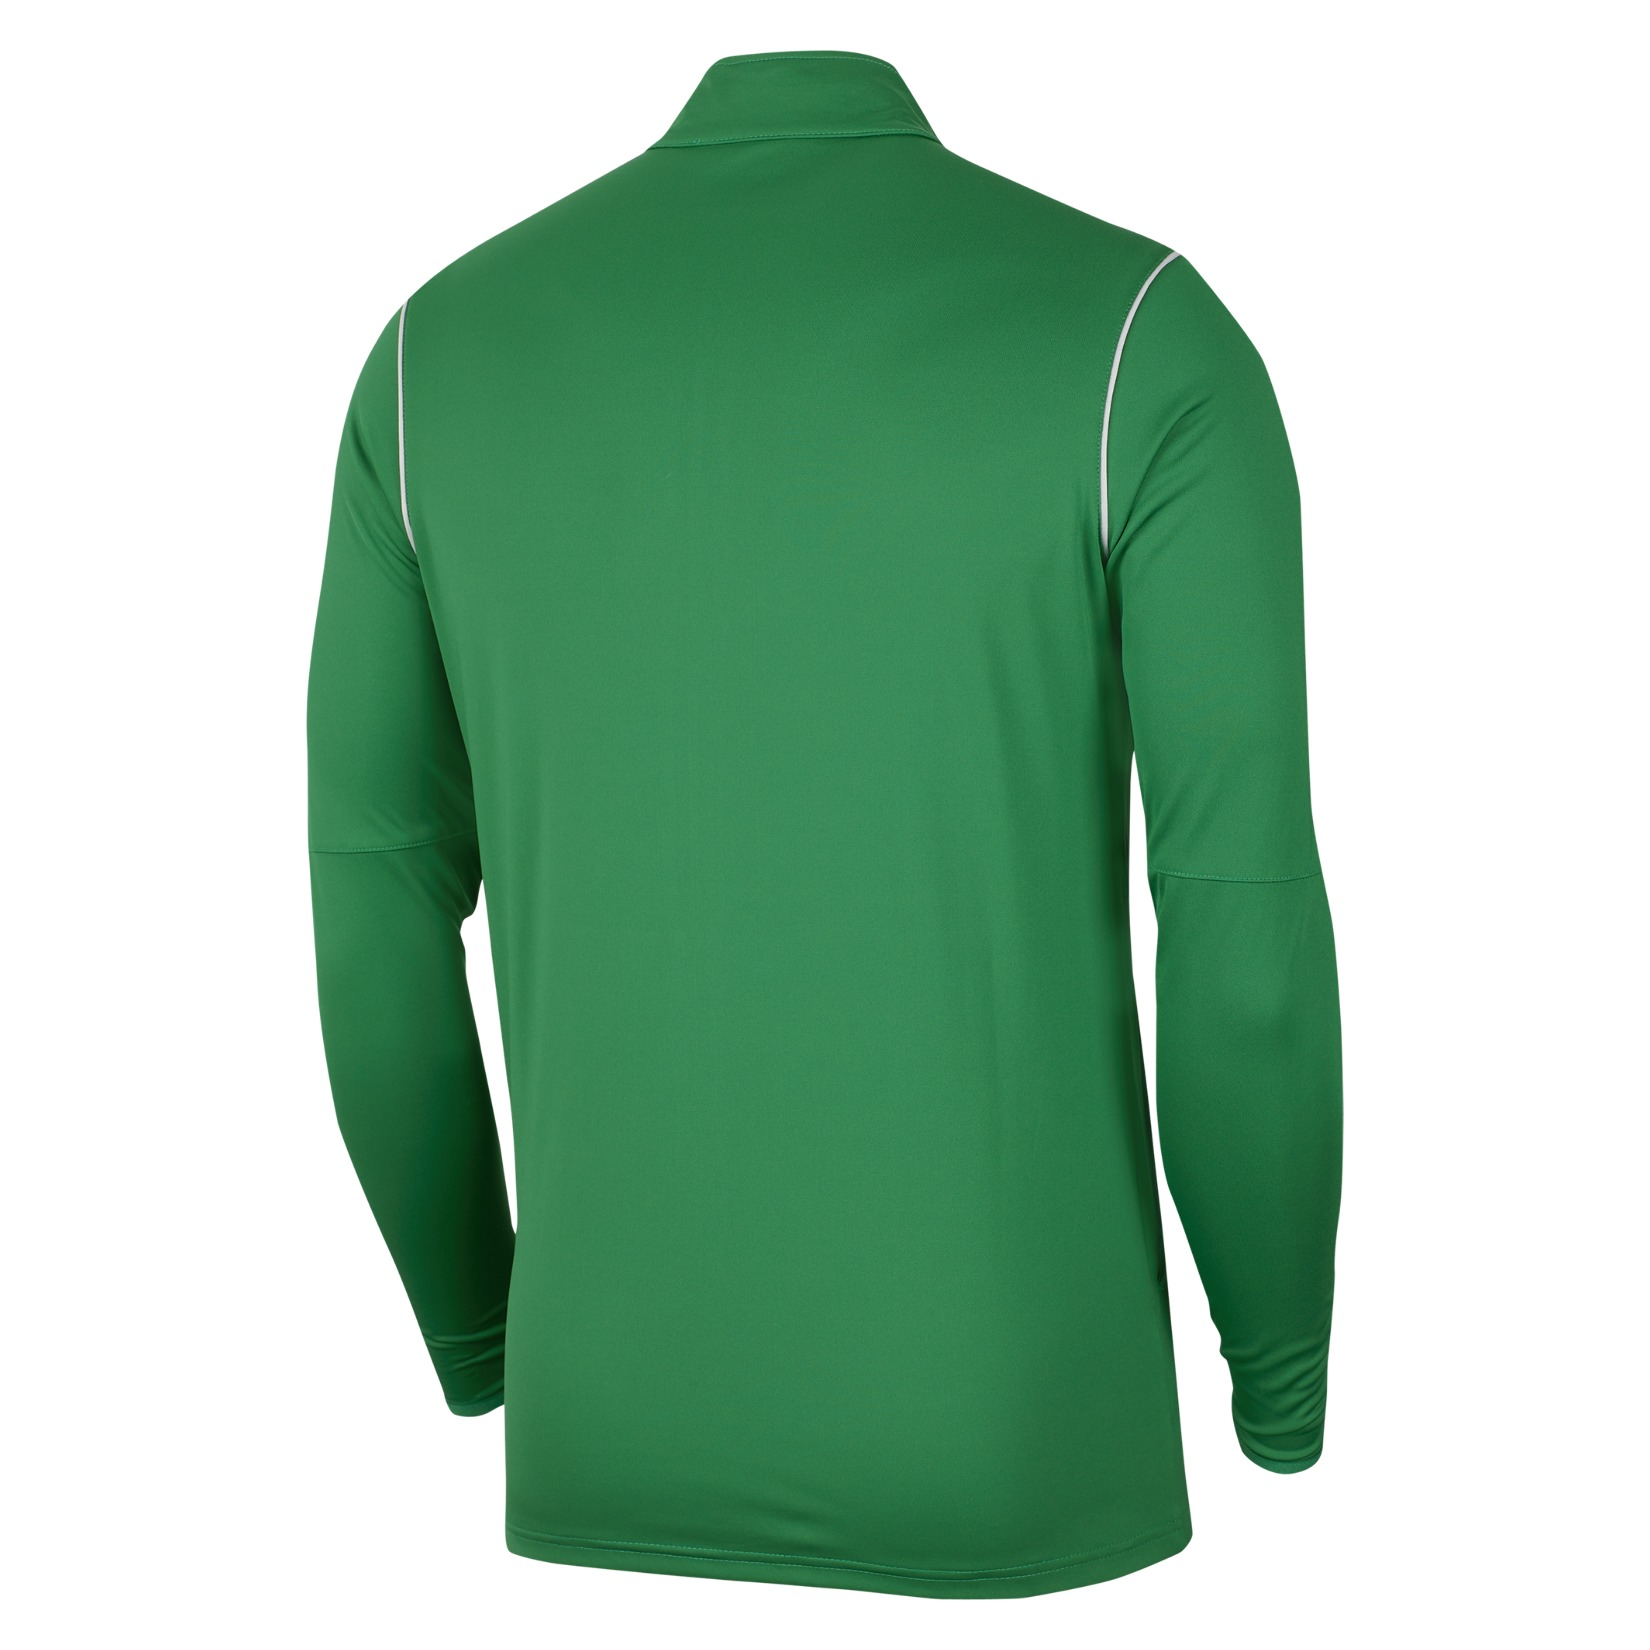 Nike Dri-fit Park 20 Knitted Track Jacket Pine Green-White-White